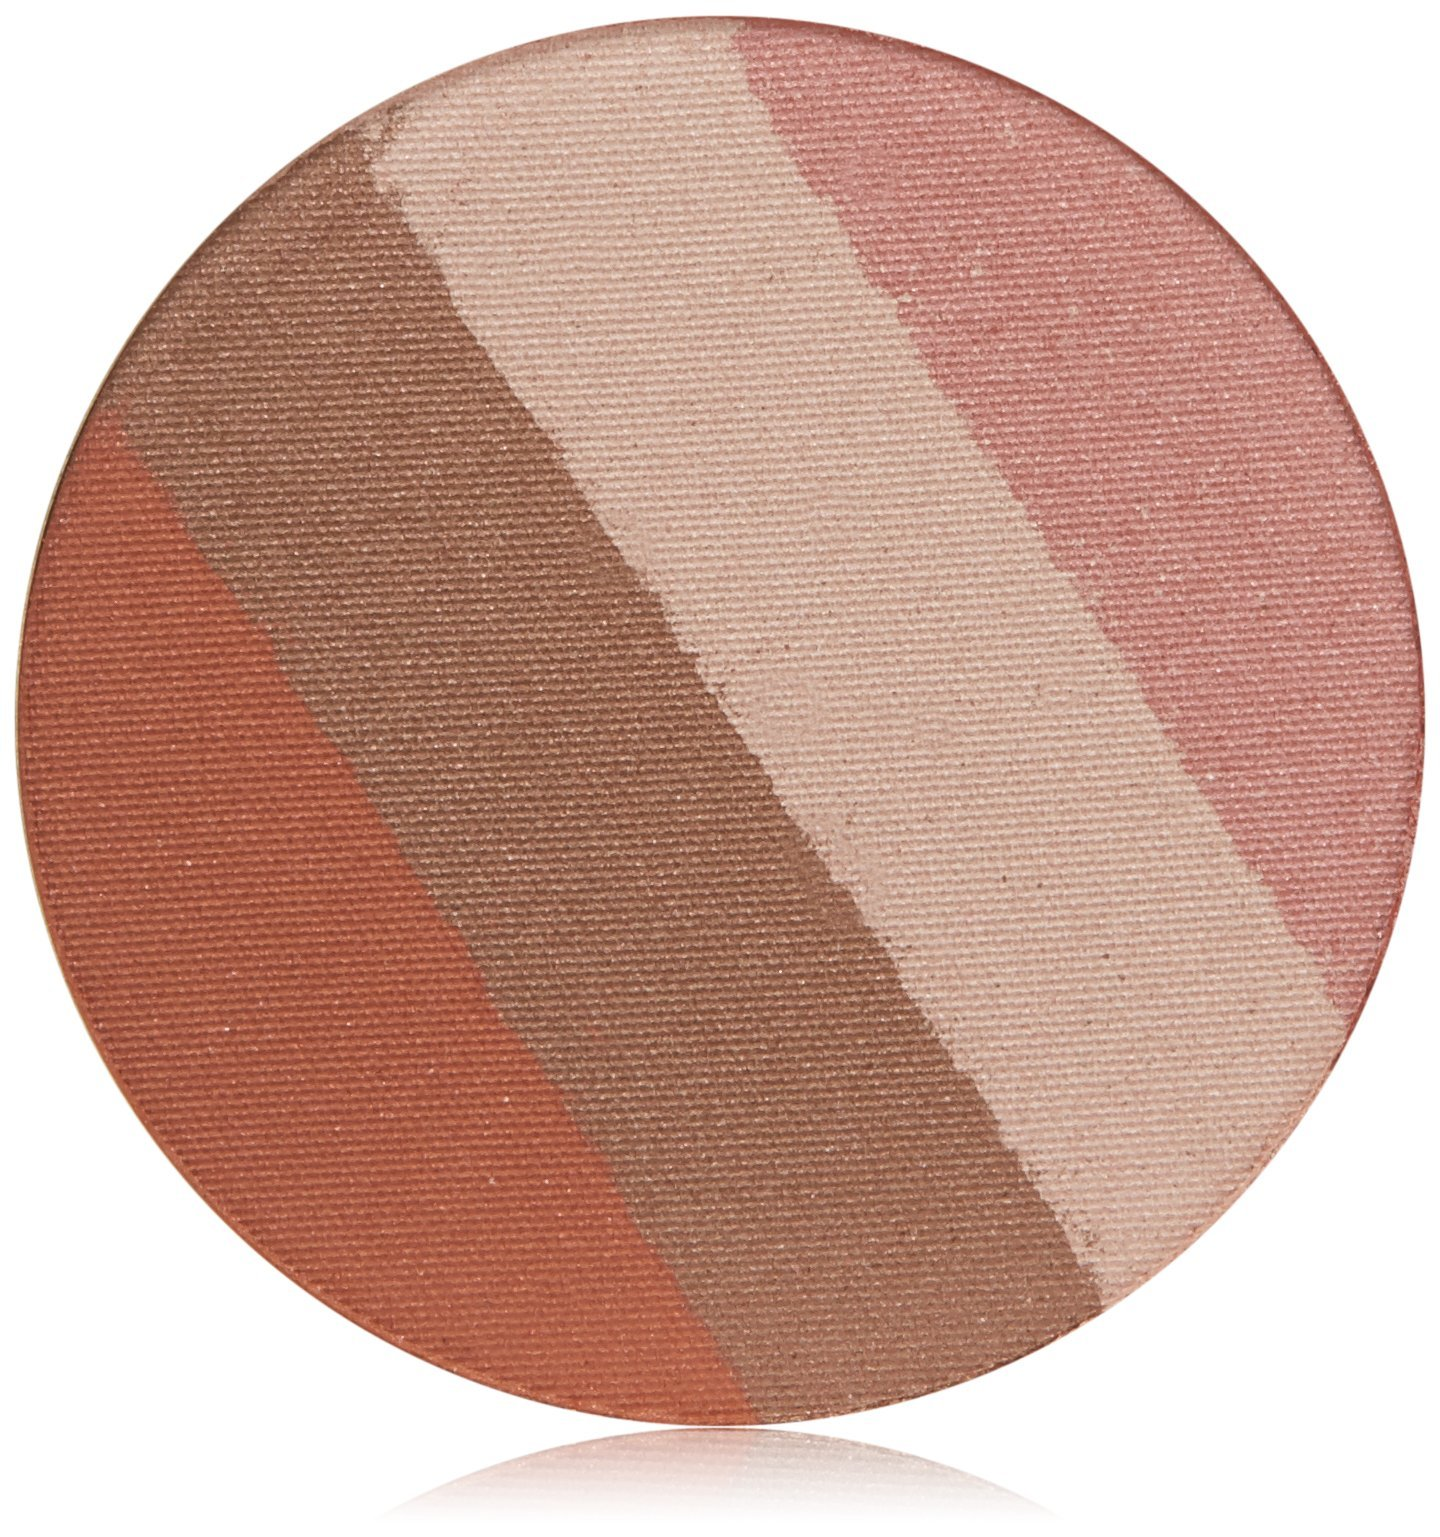 jane iredale Bronzer Refill, Sunbeam, 0.3 oz. by jane iredale